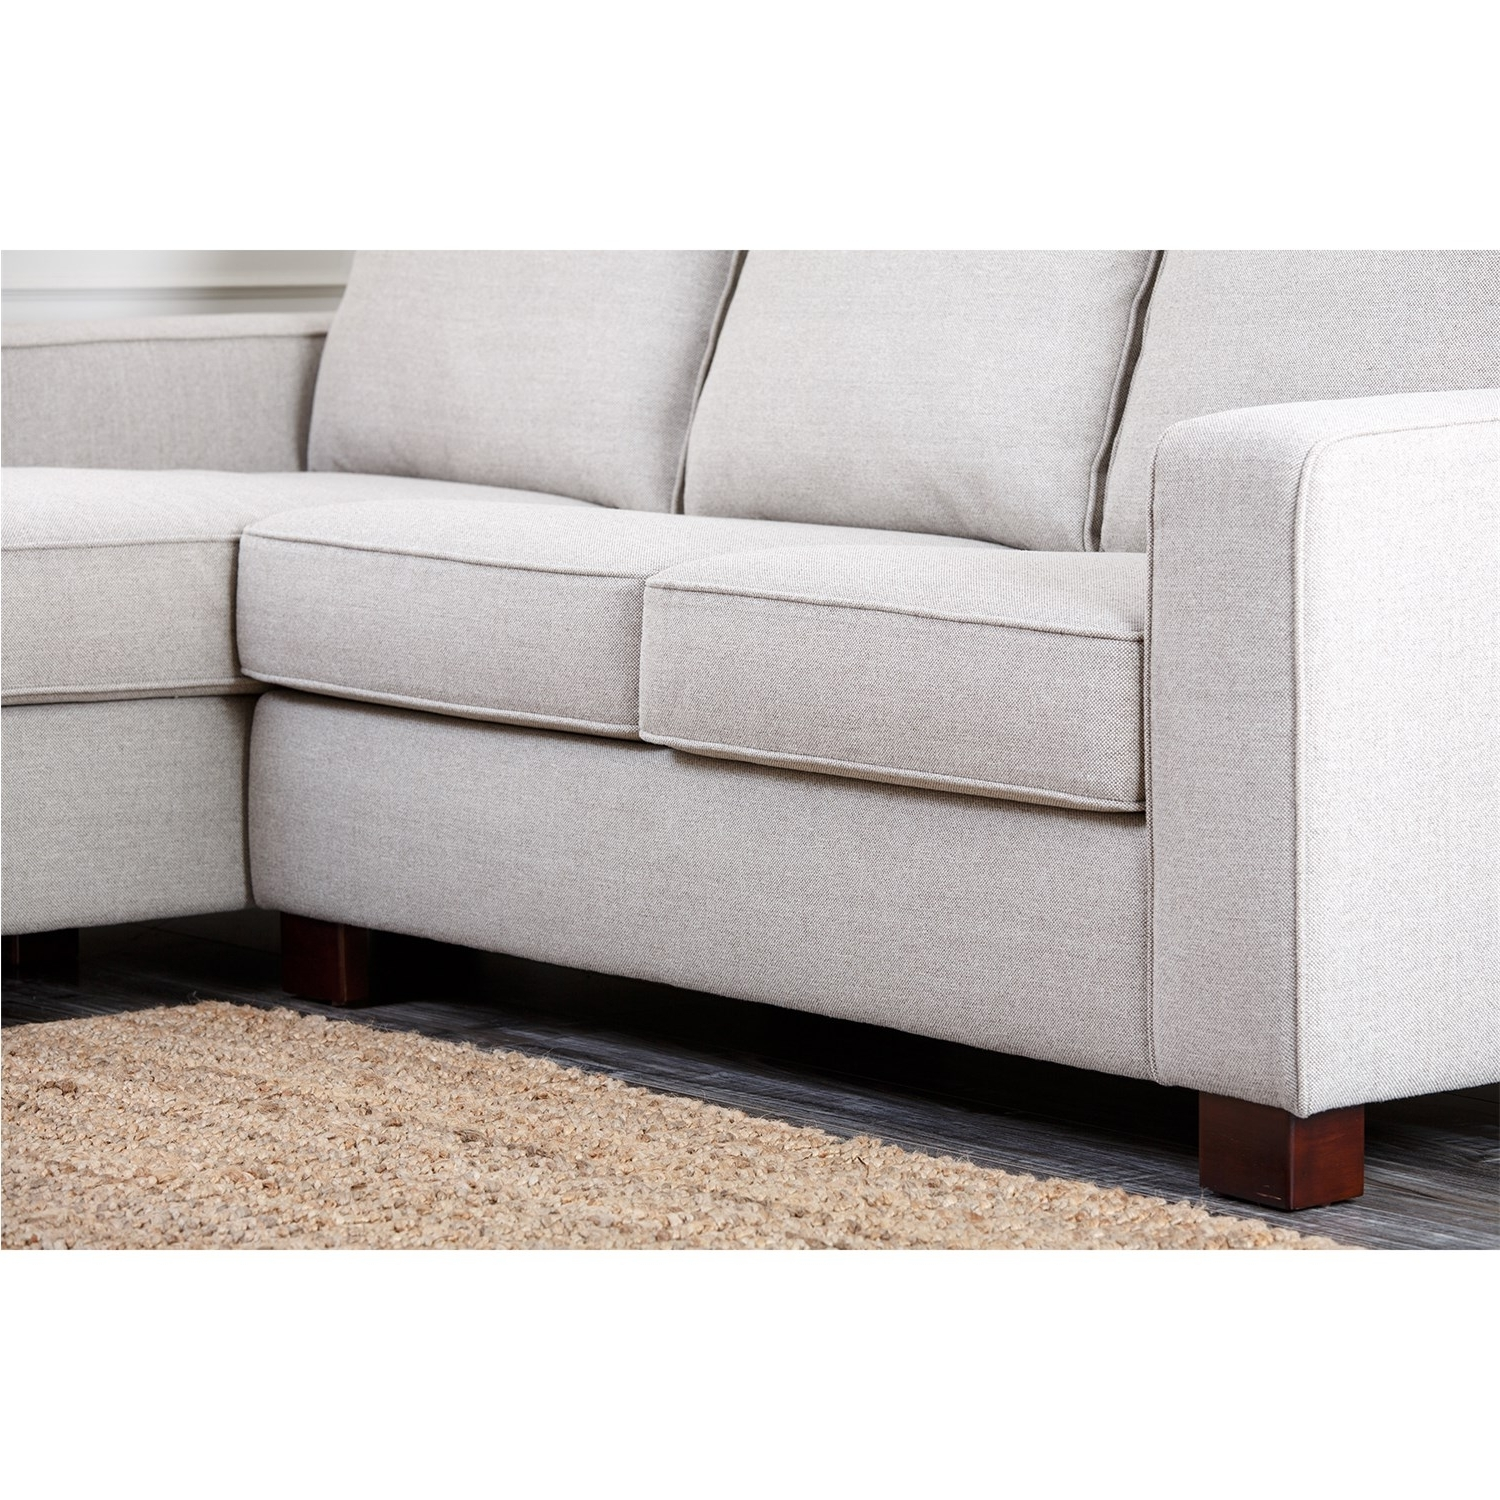 Regina Sectional Sofas With Regard To Preferred Abbyson Living Rl 1321 Gry Regina Grey Fabric Sectional Sofa (View 9 of 15)